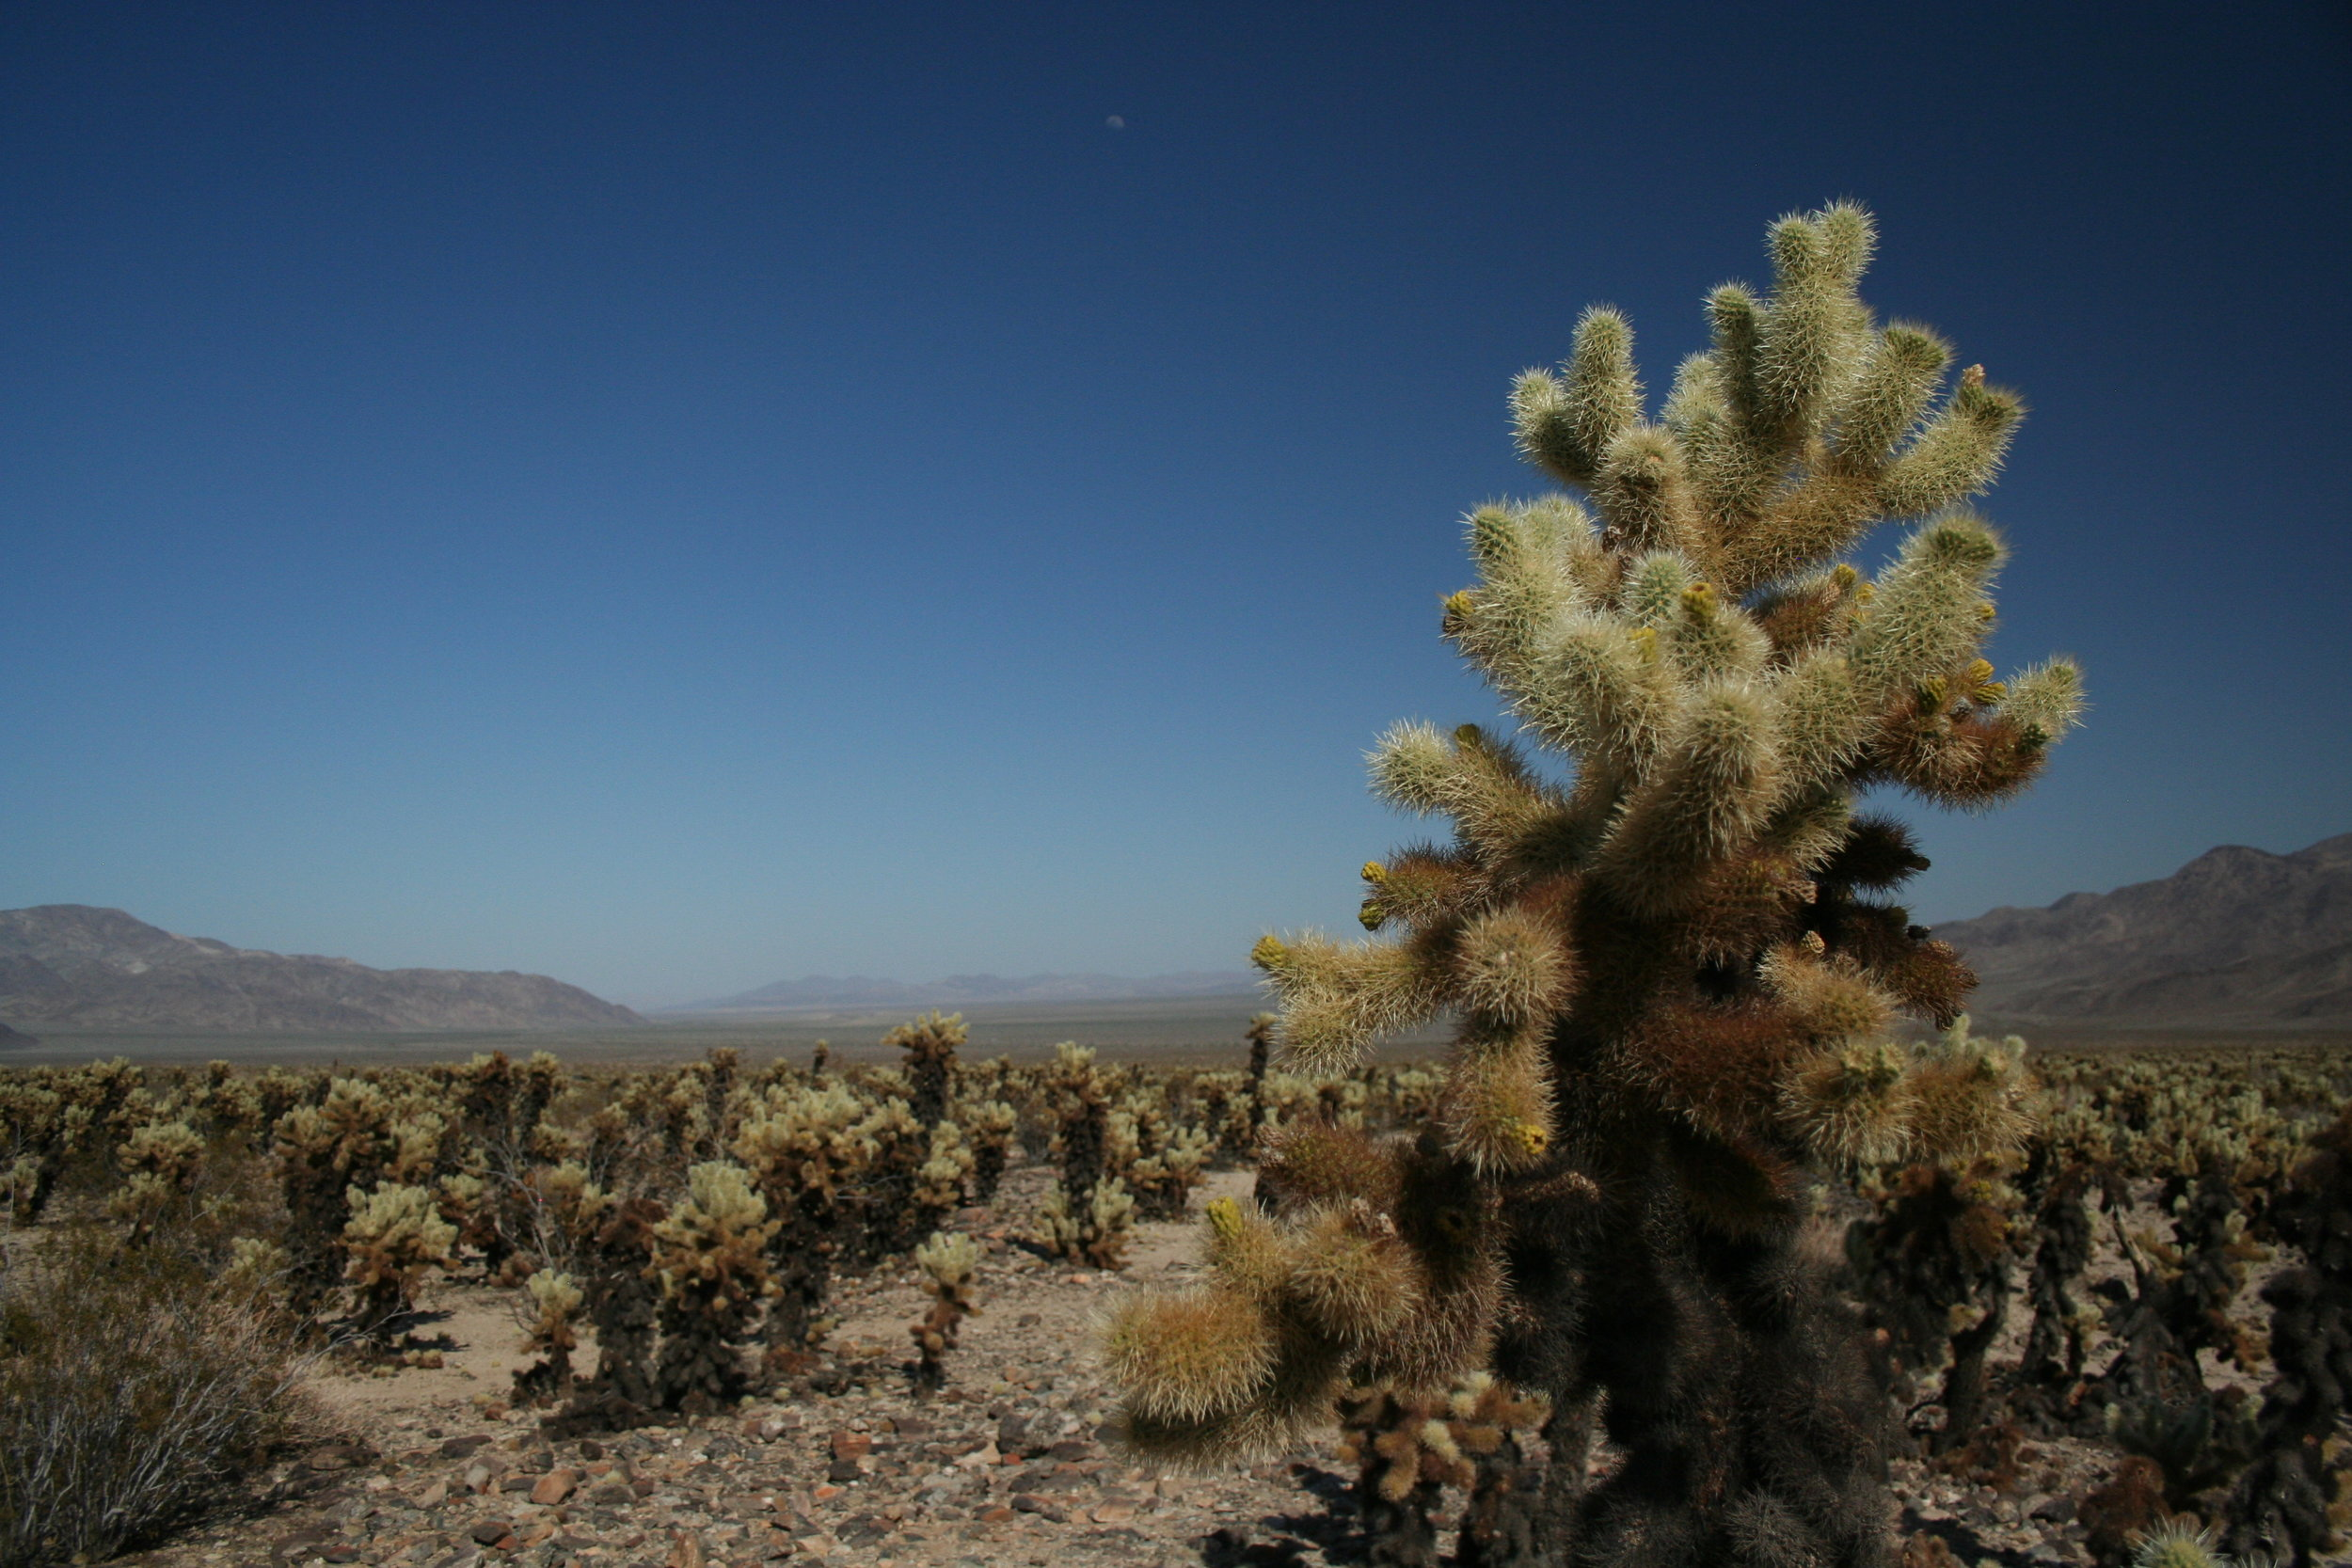 Cholla cacti in Joshua Tree National Park, a landscape unlike any this Midwestern native has ever seen.